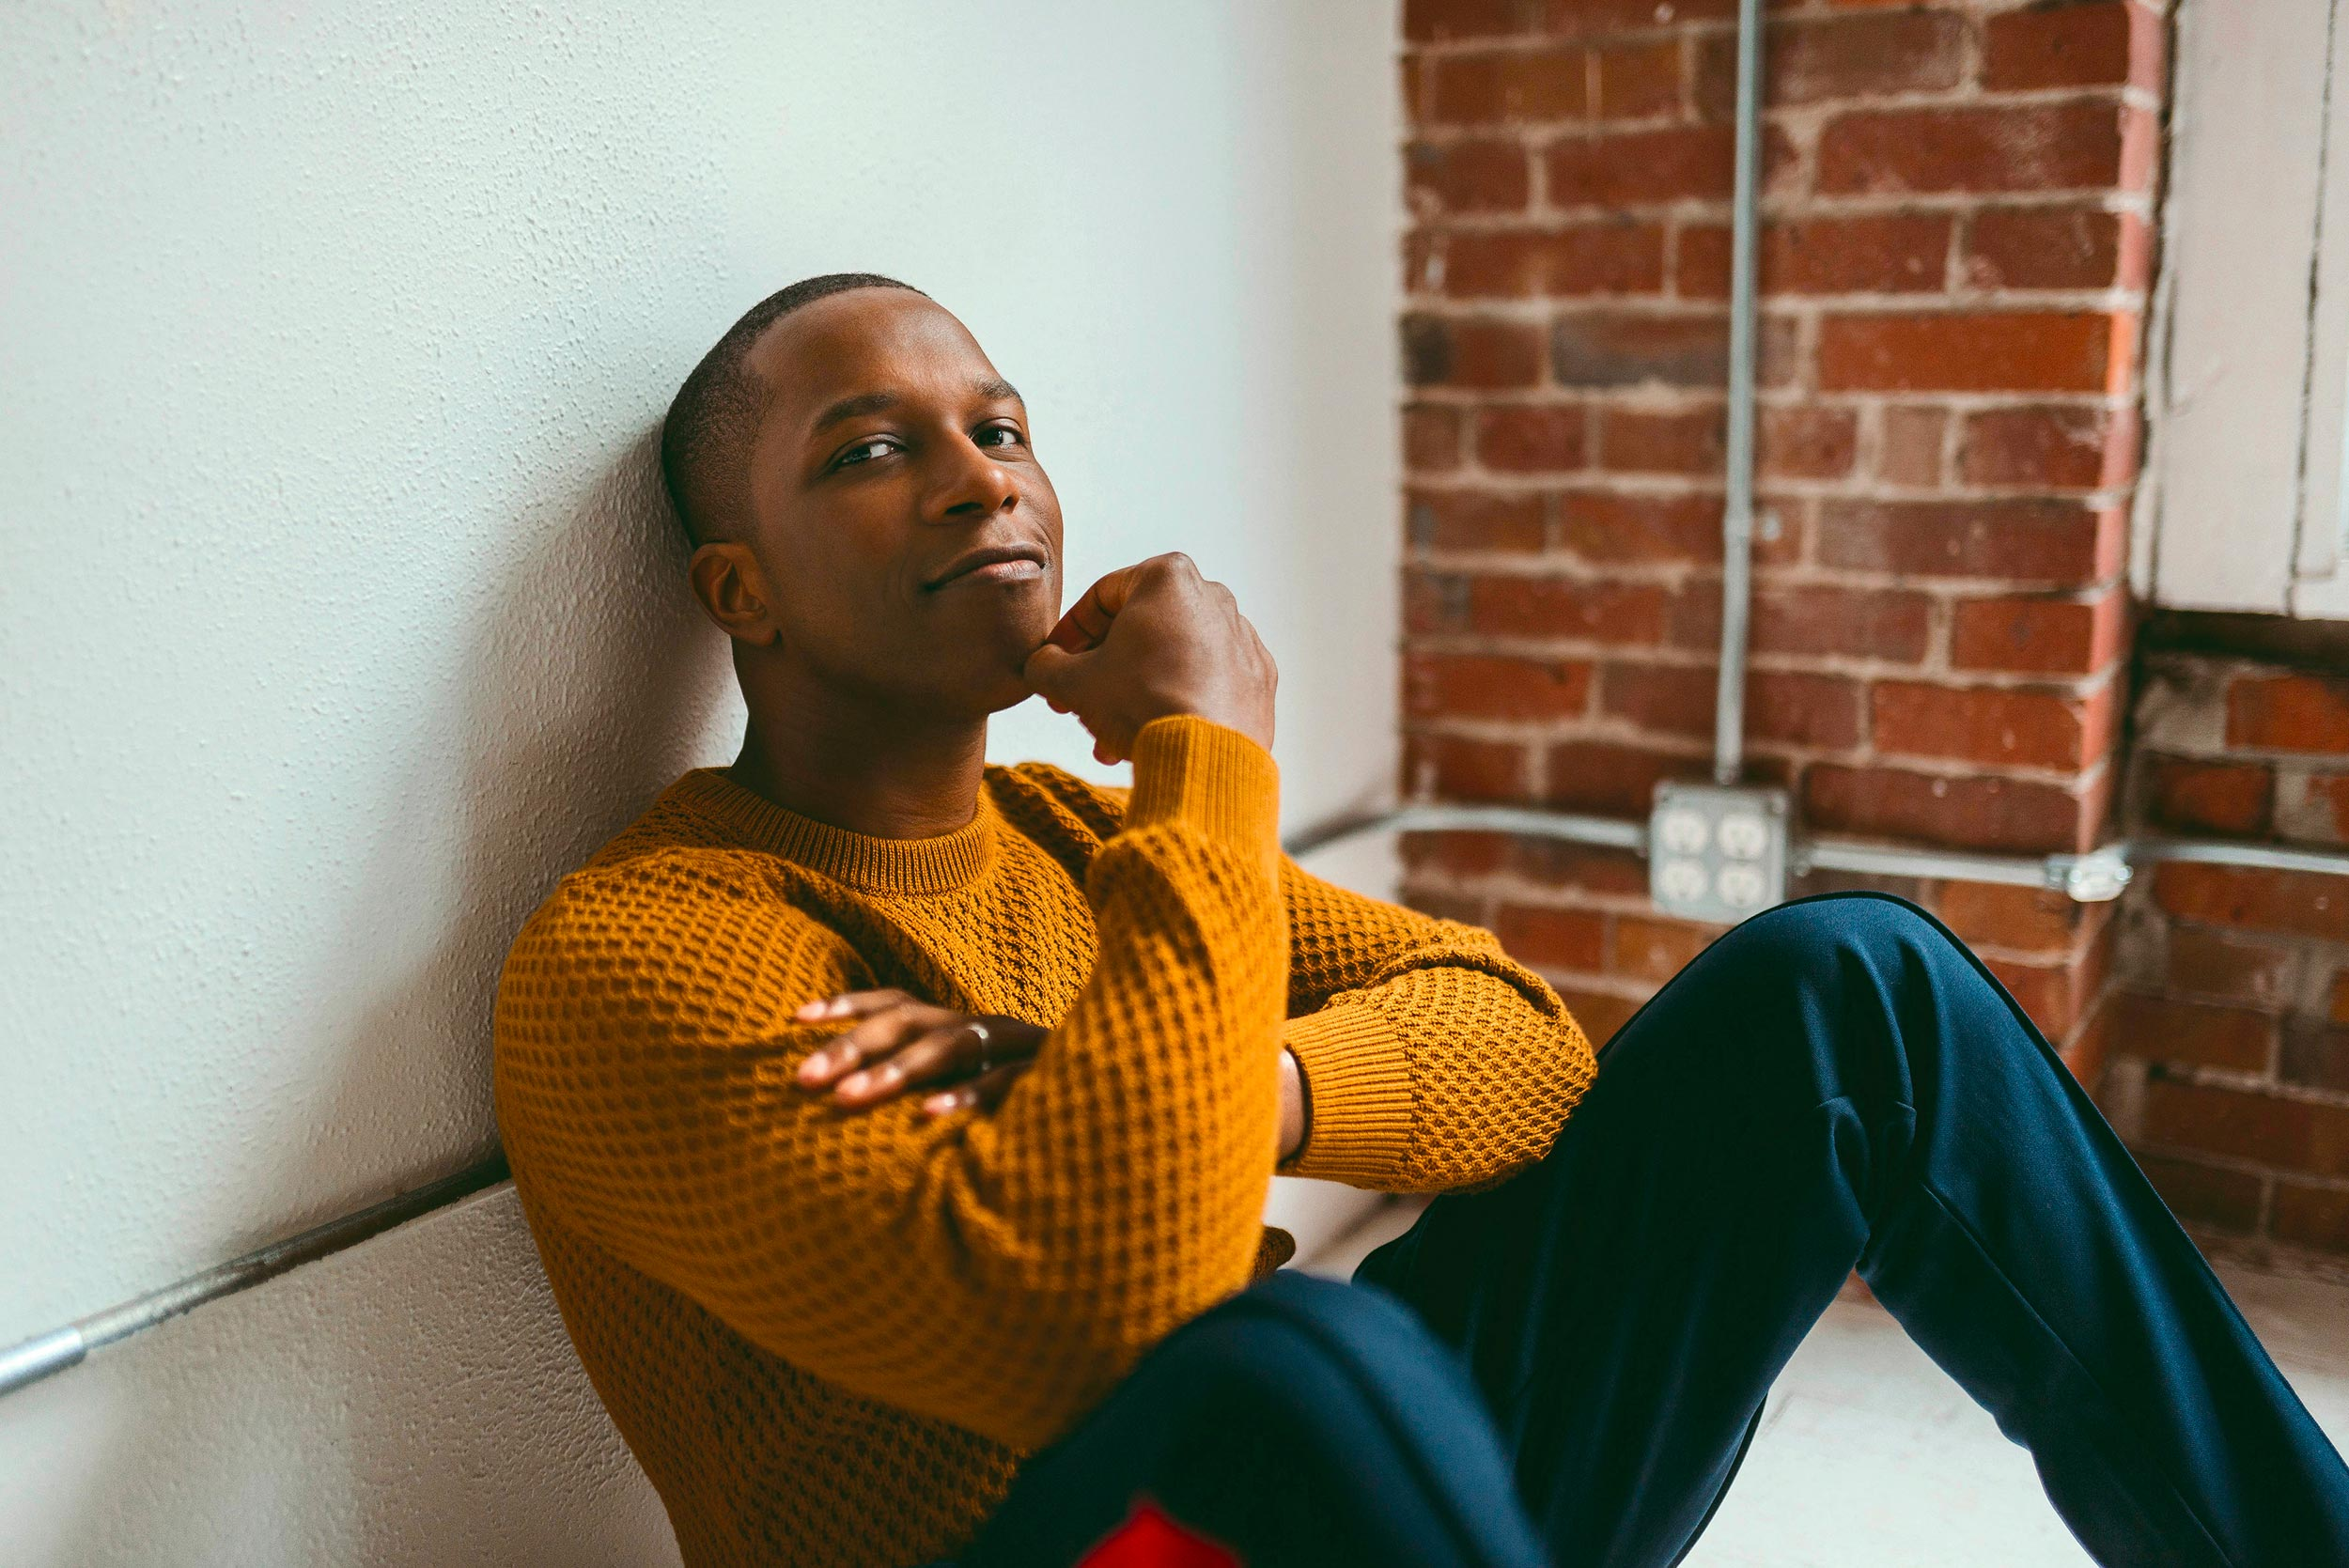 Leslie Odom Jr.: Reason No.101 On Why You Should Never Place Anyone in a Box